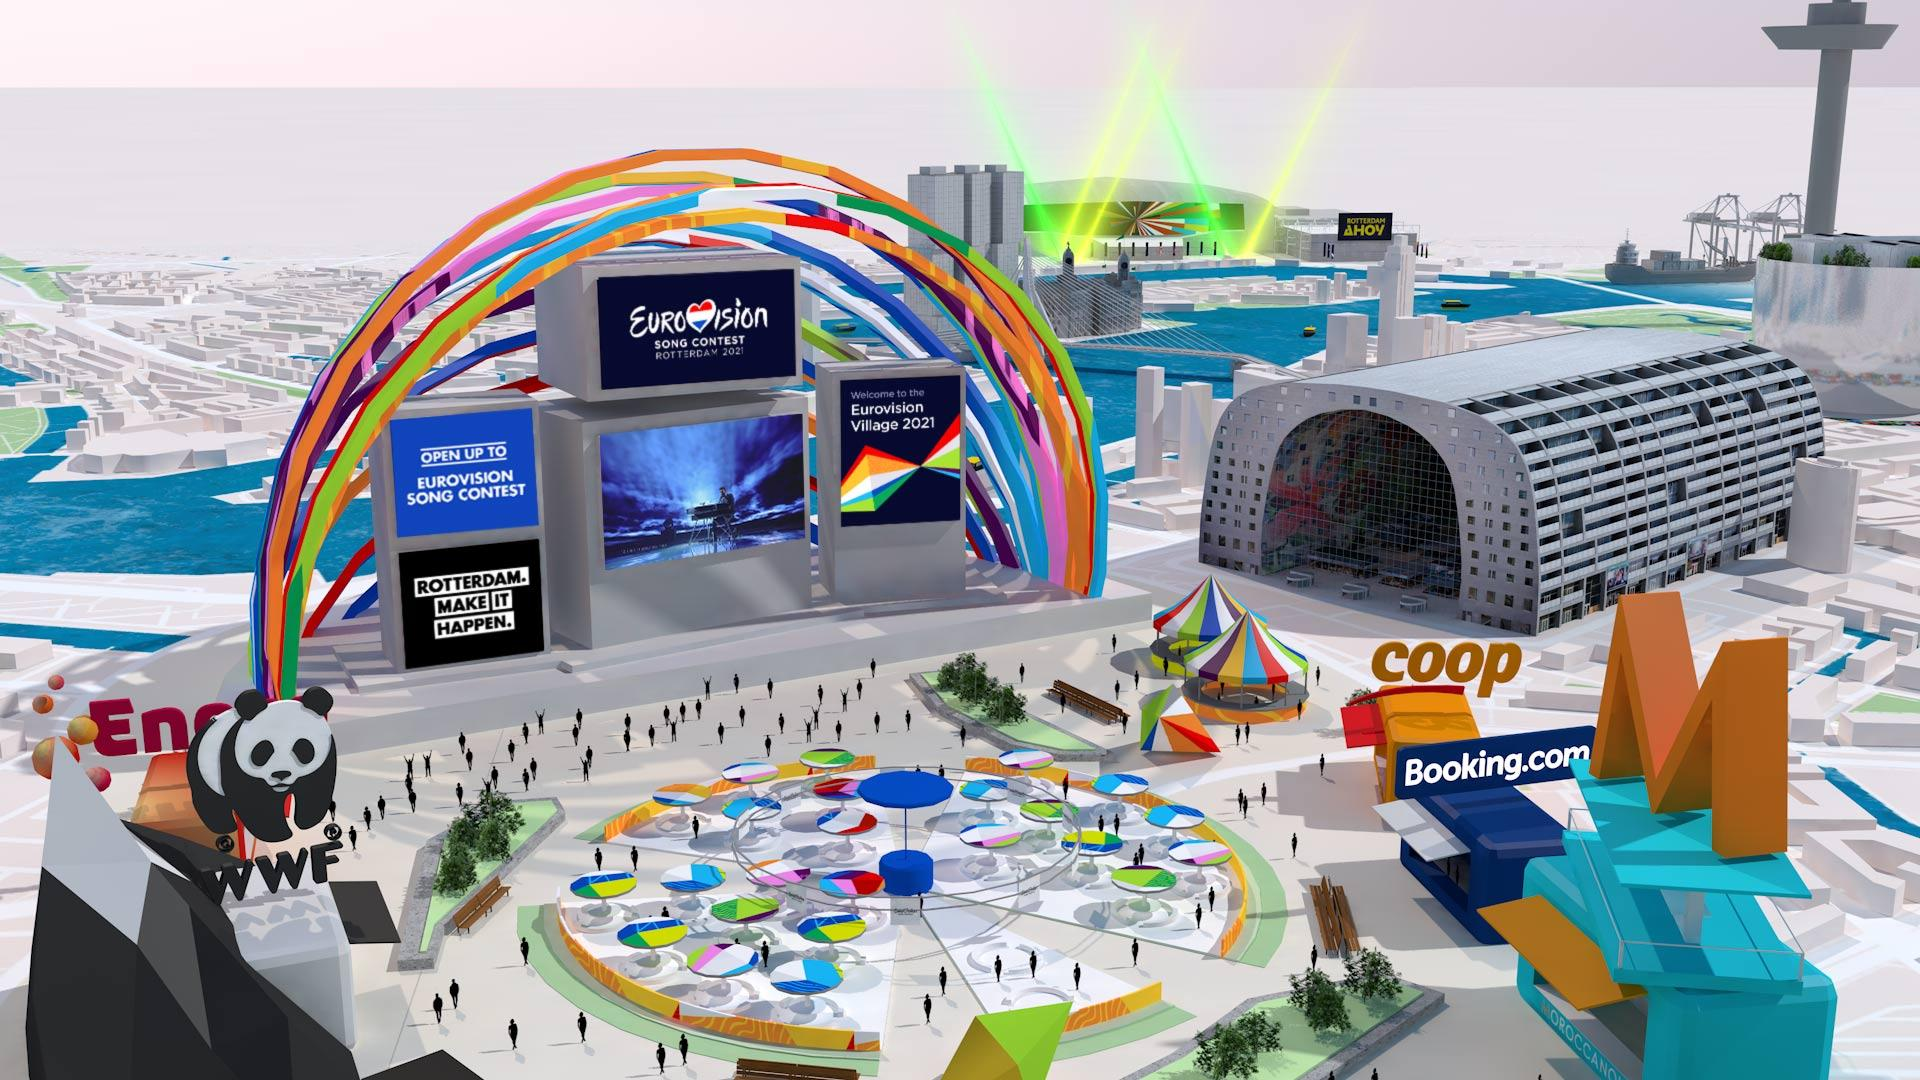 The world's first ever Online Eurovision Village opens 15 May